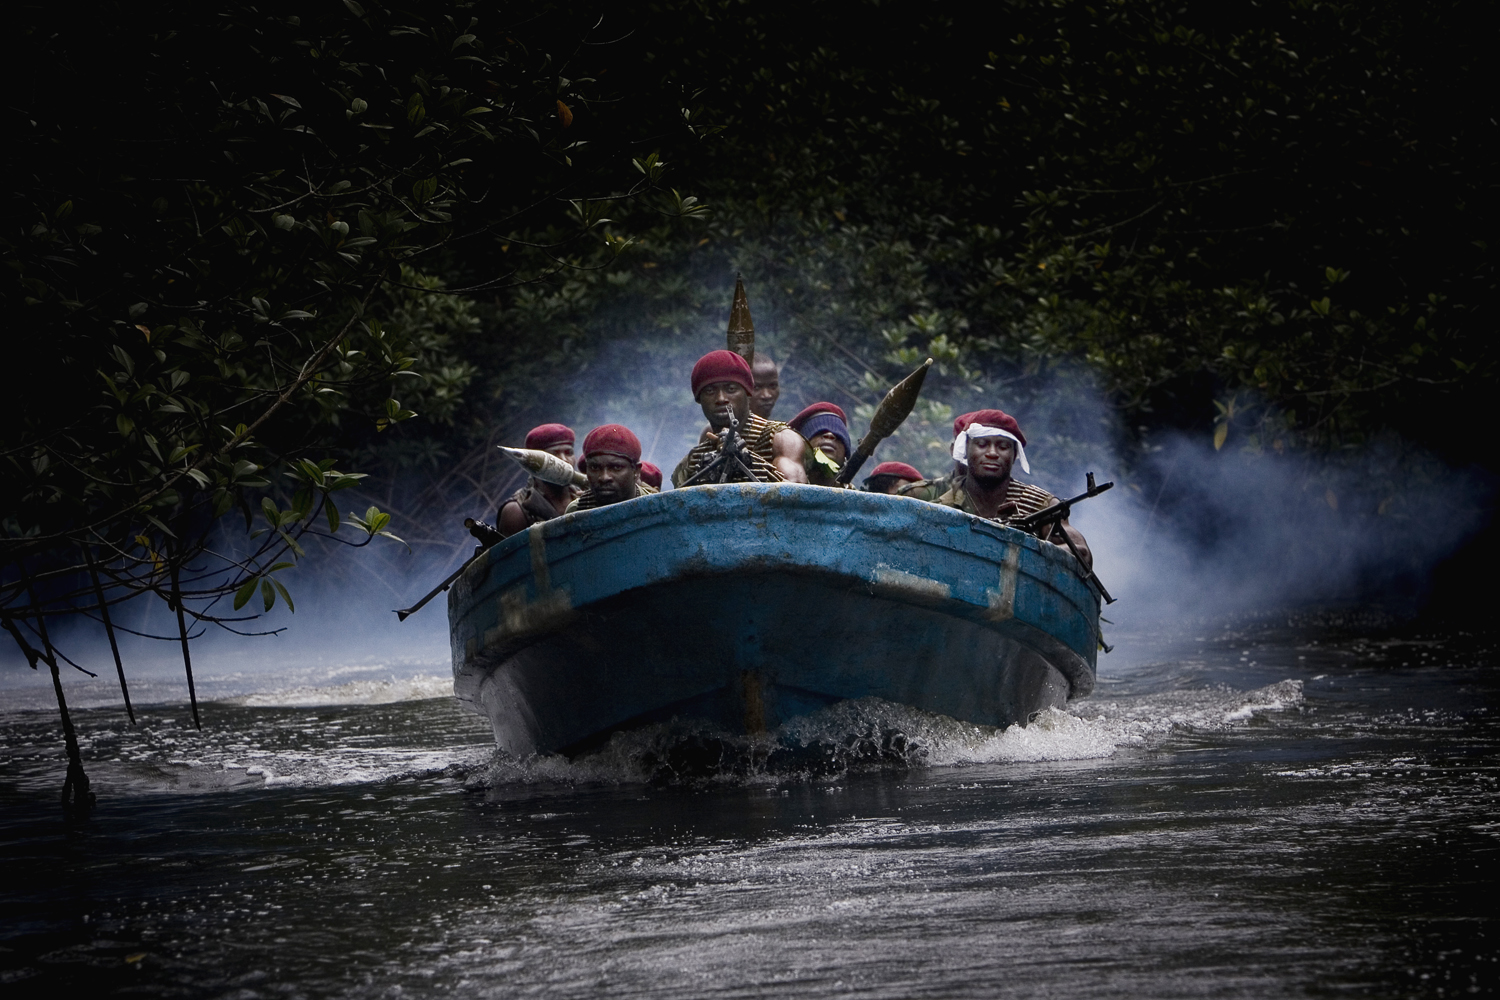 niger delta An amnesty offered to militants in the niger delta in 2009 was intended to end fighting, oil theft and other disruption in the region those hopes haven't been realized, and the fragile.